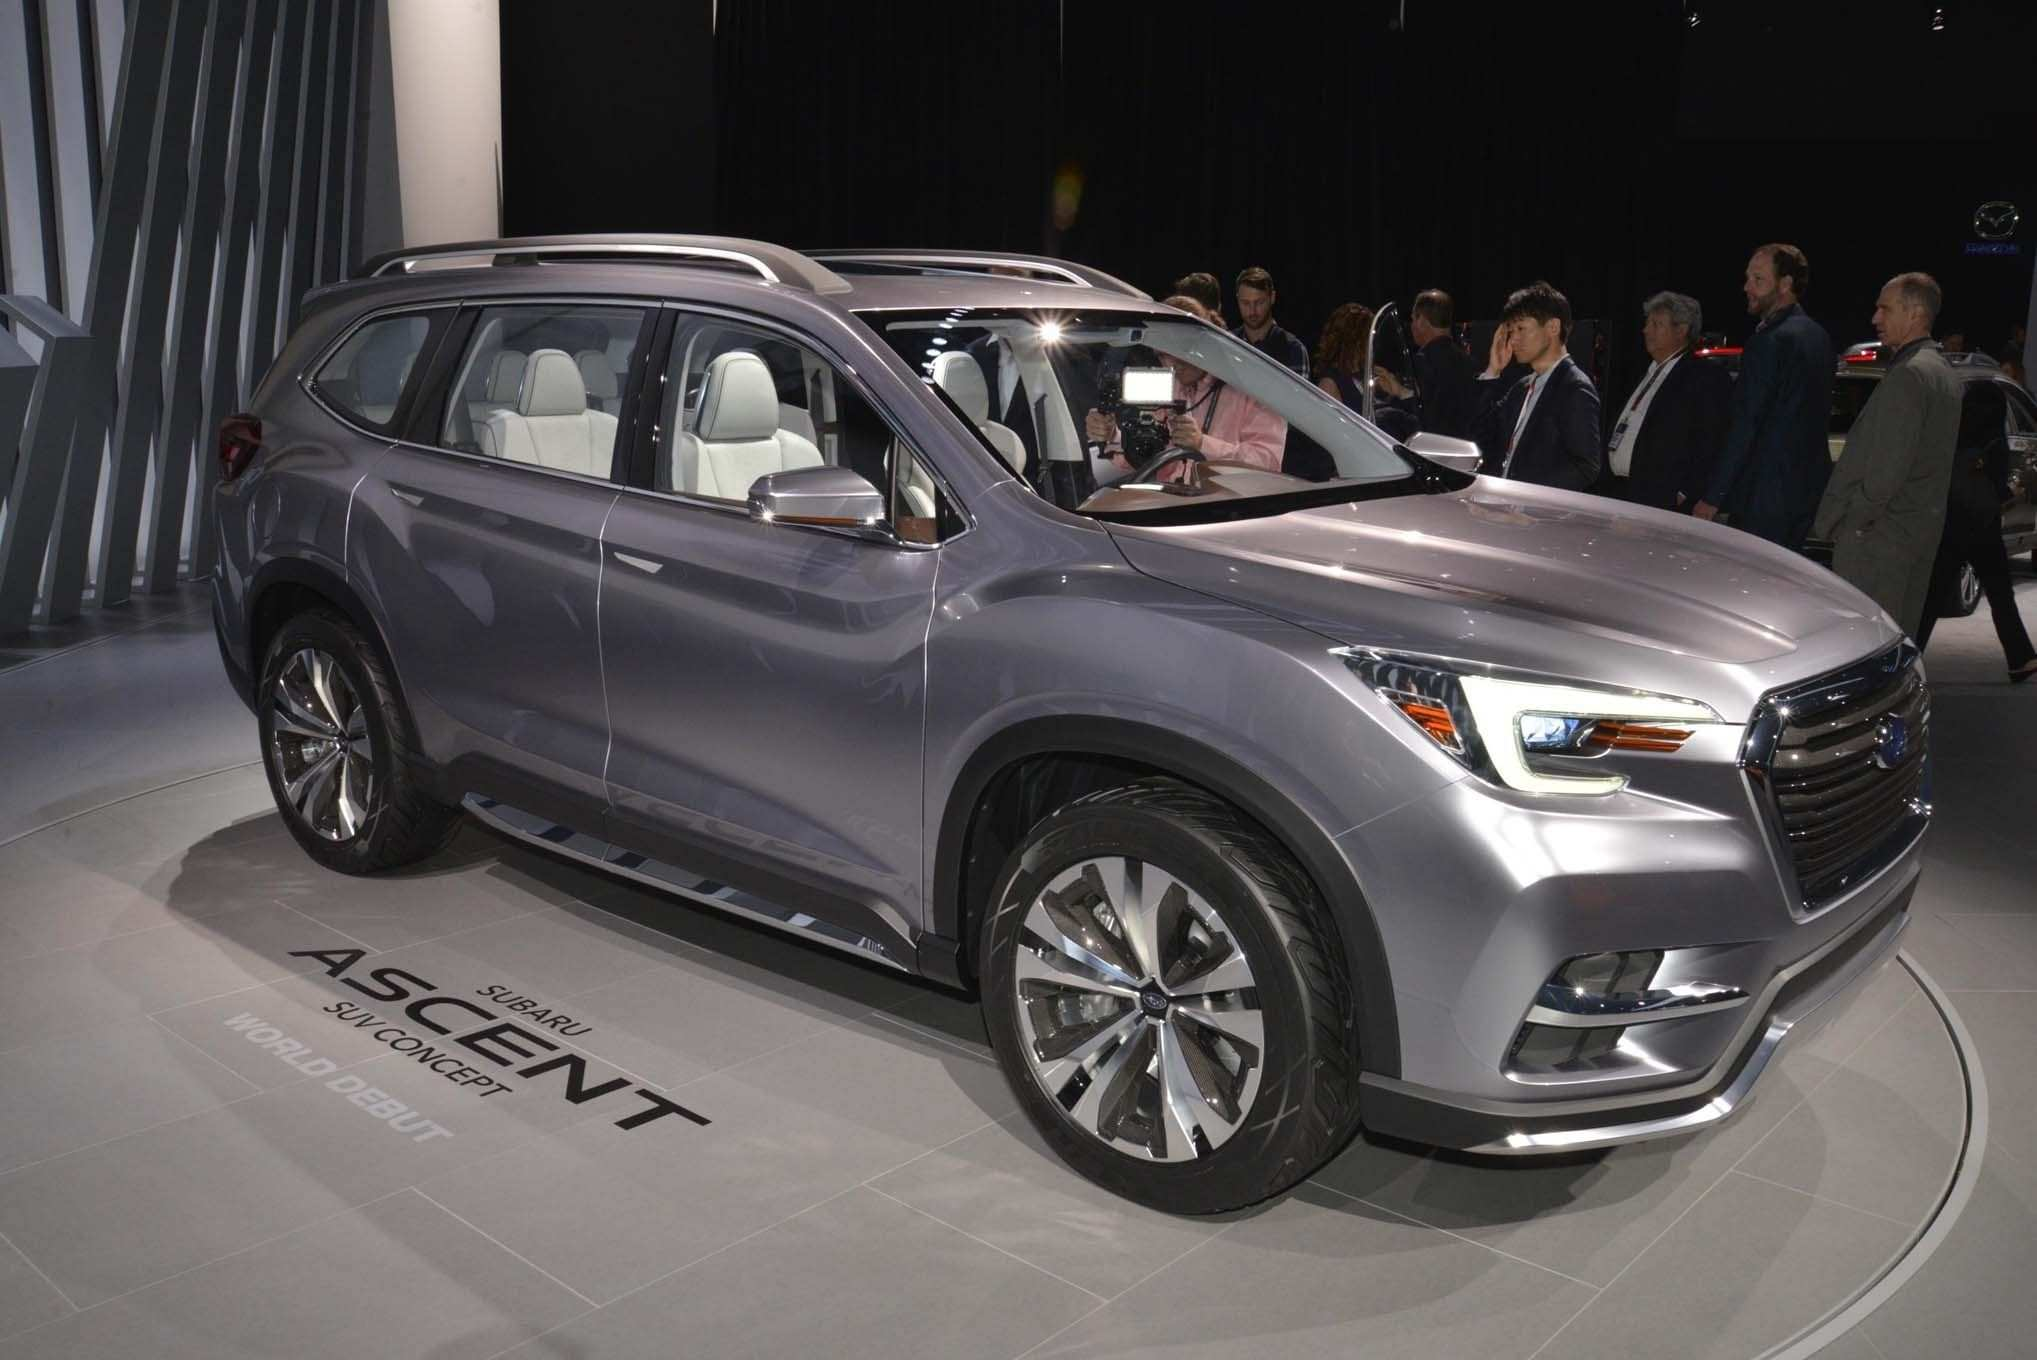 82 The Best 2019 Subaru Outback Next Generation Prices